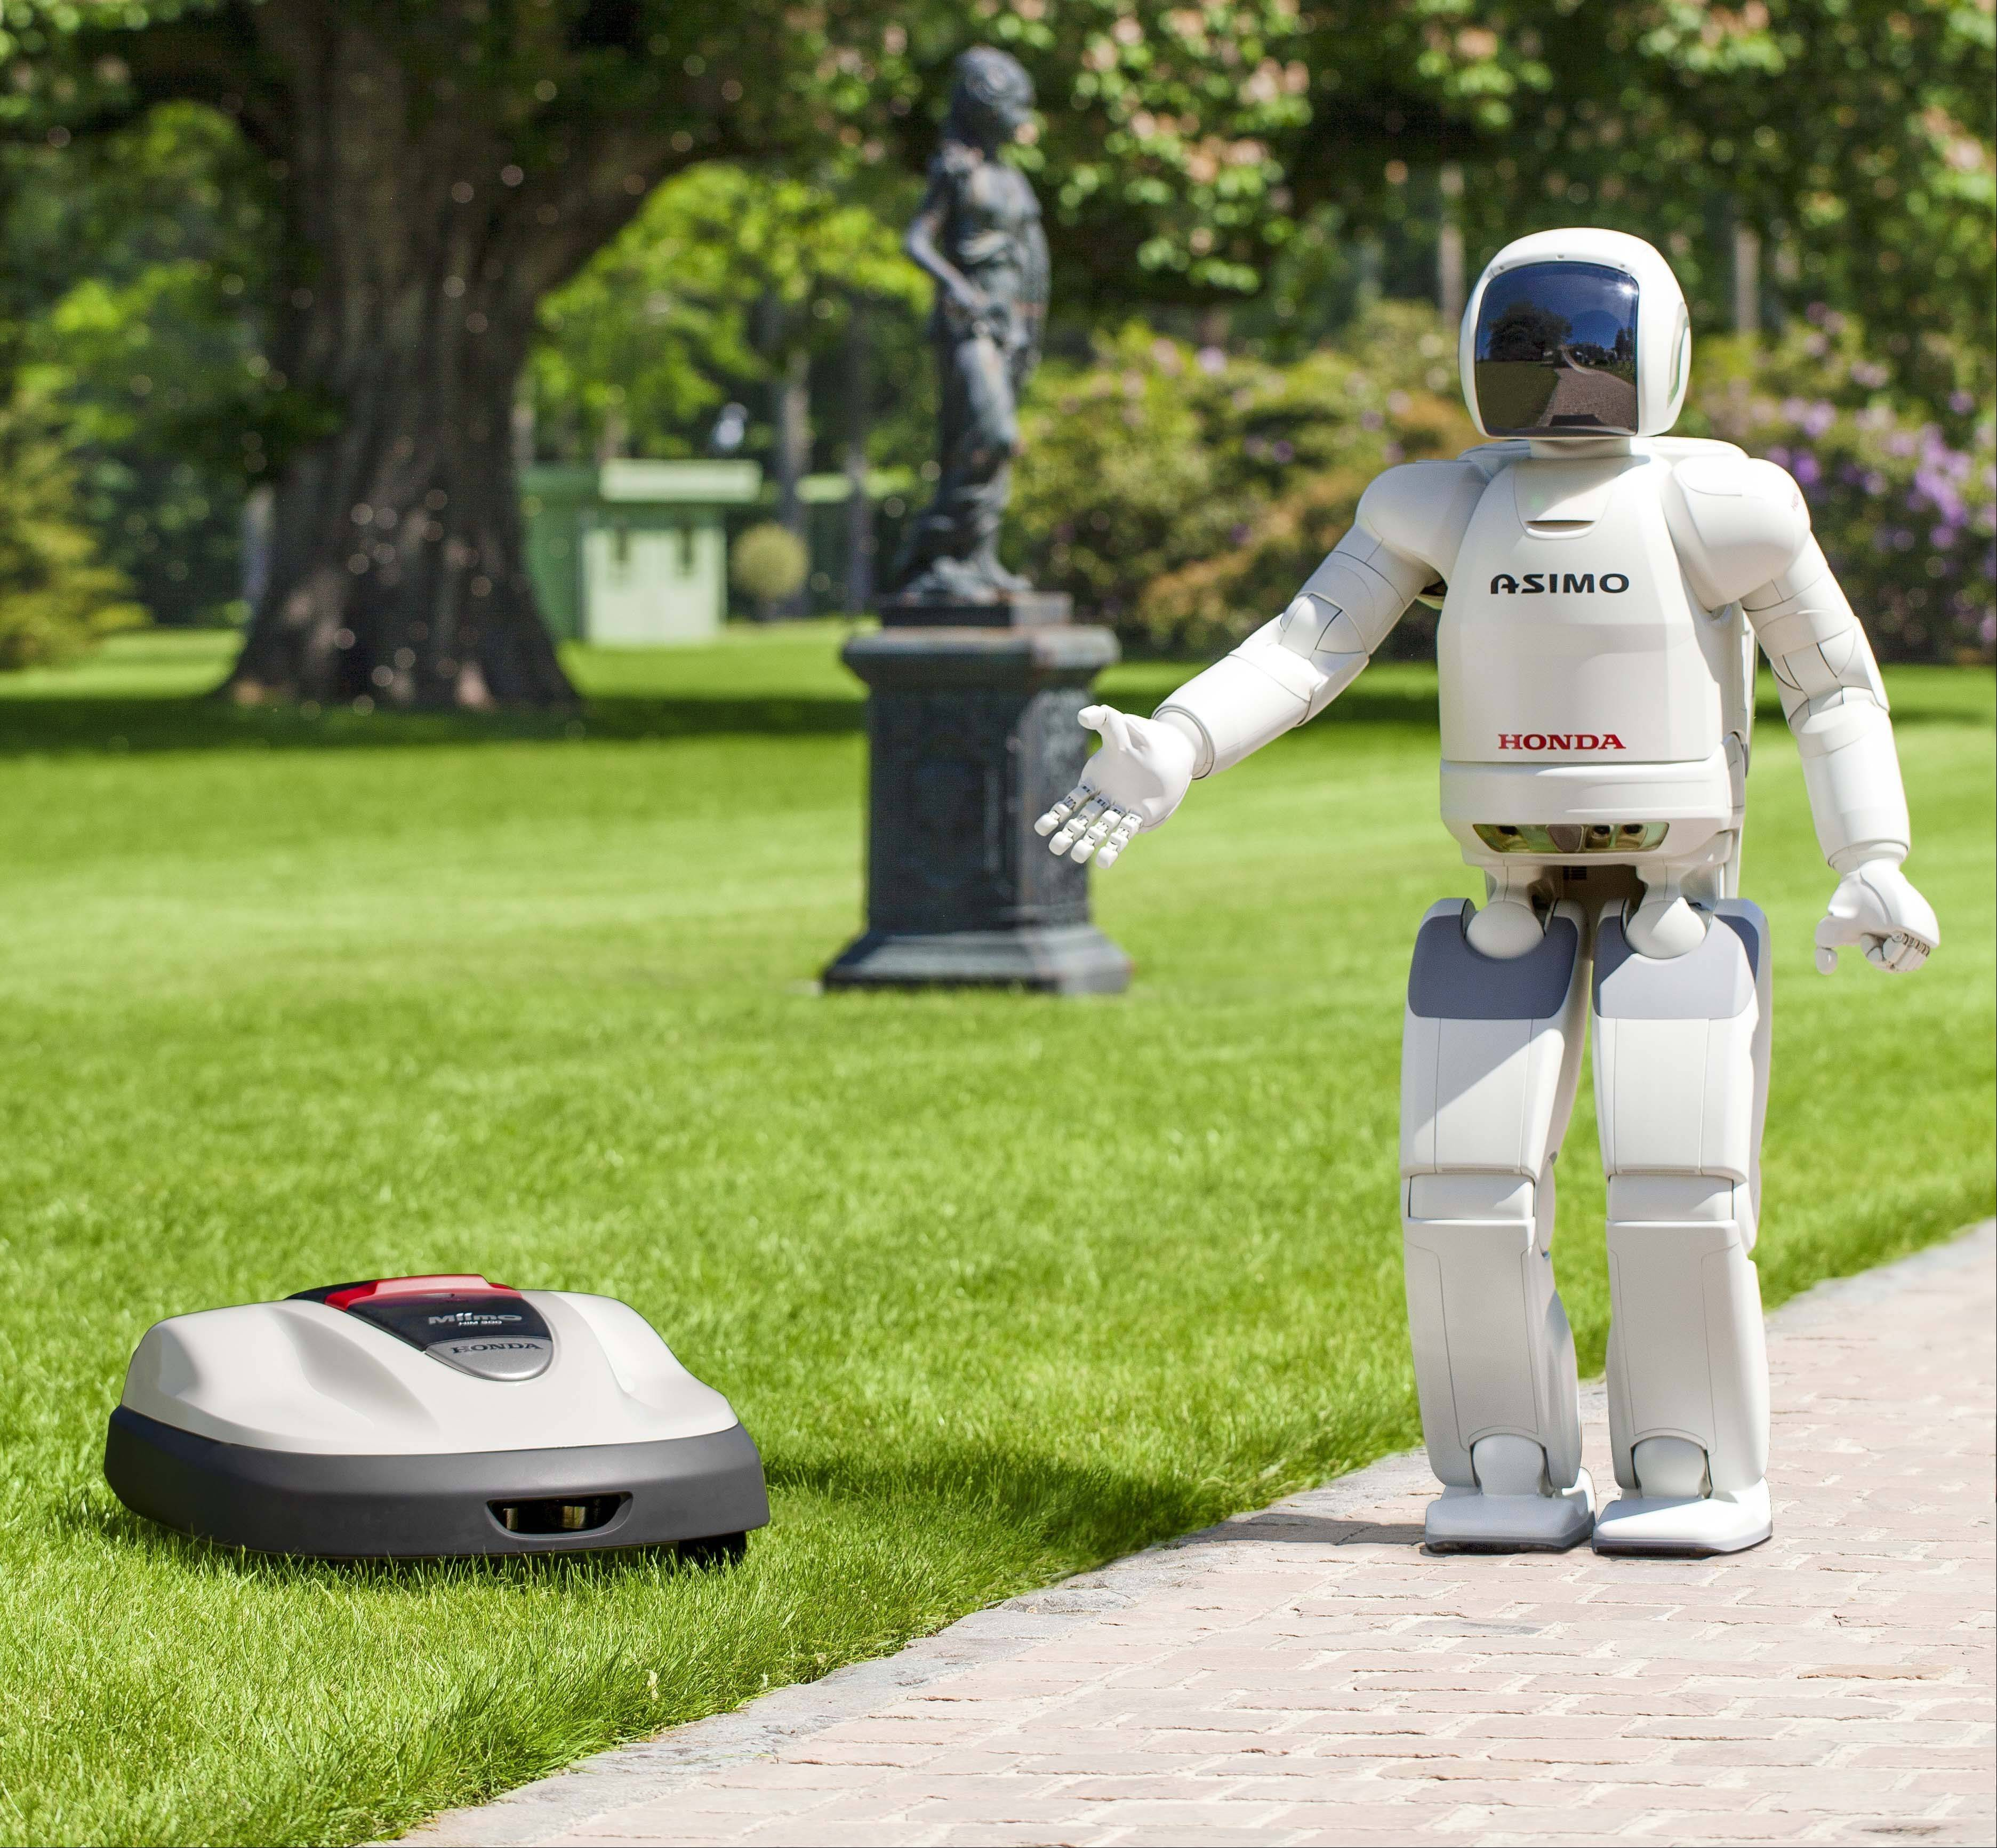 Asimo, Honda's walking talking robot shows its new product lawn mower Milmo.